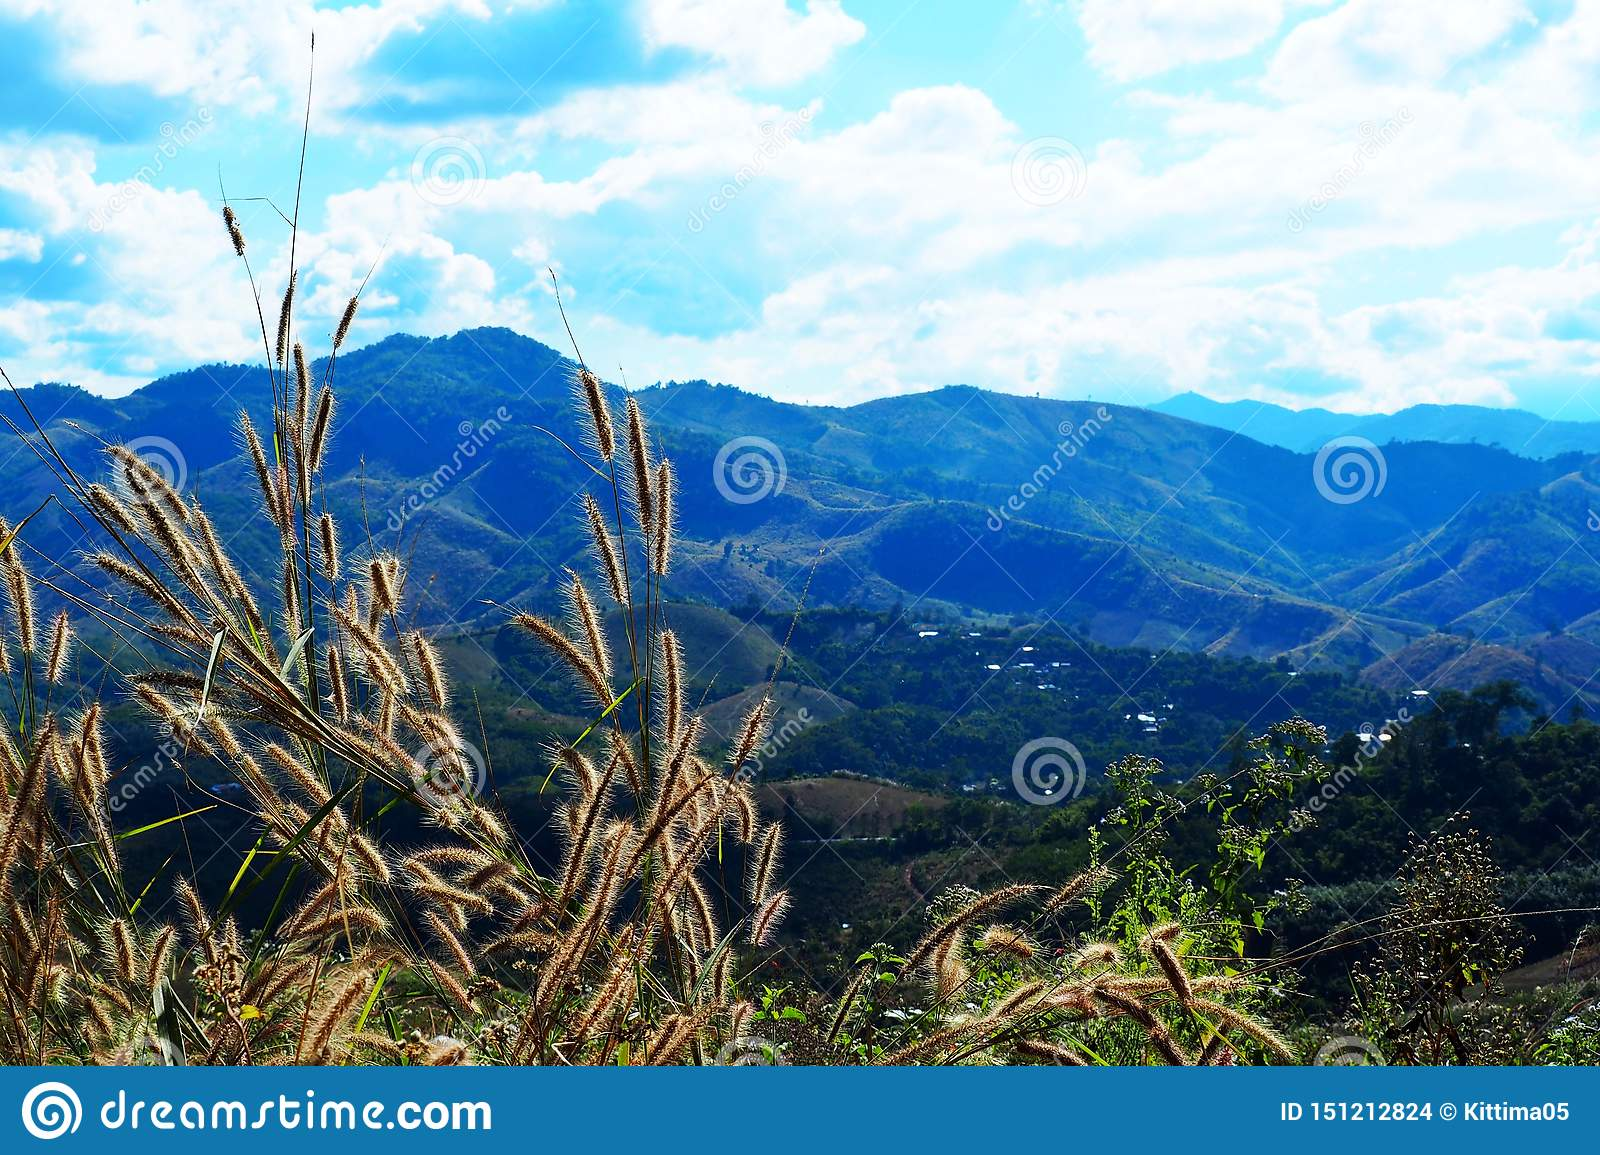 Top grass on the mountain Beautiful northern landscapes in nature